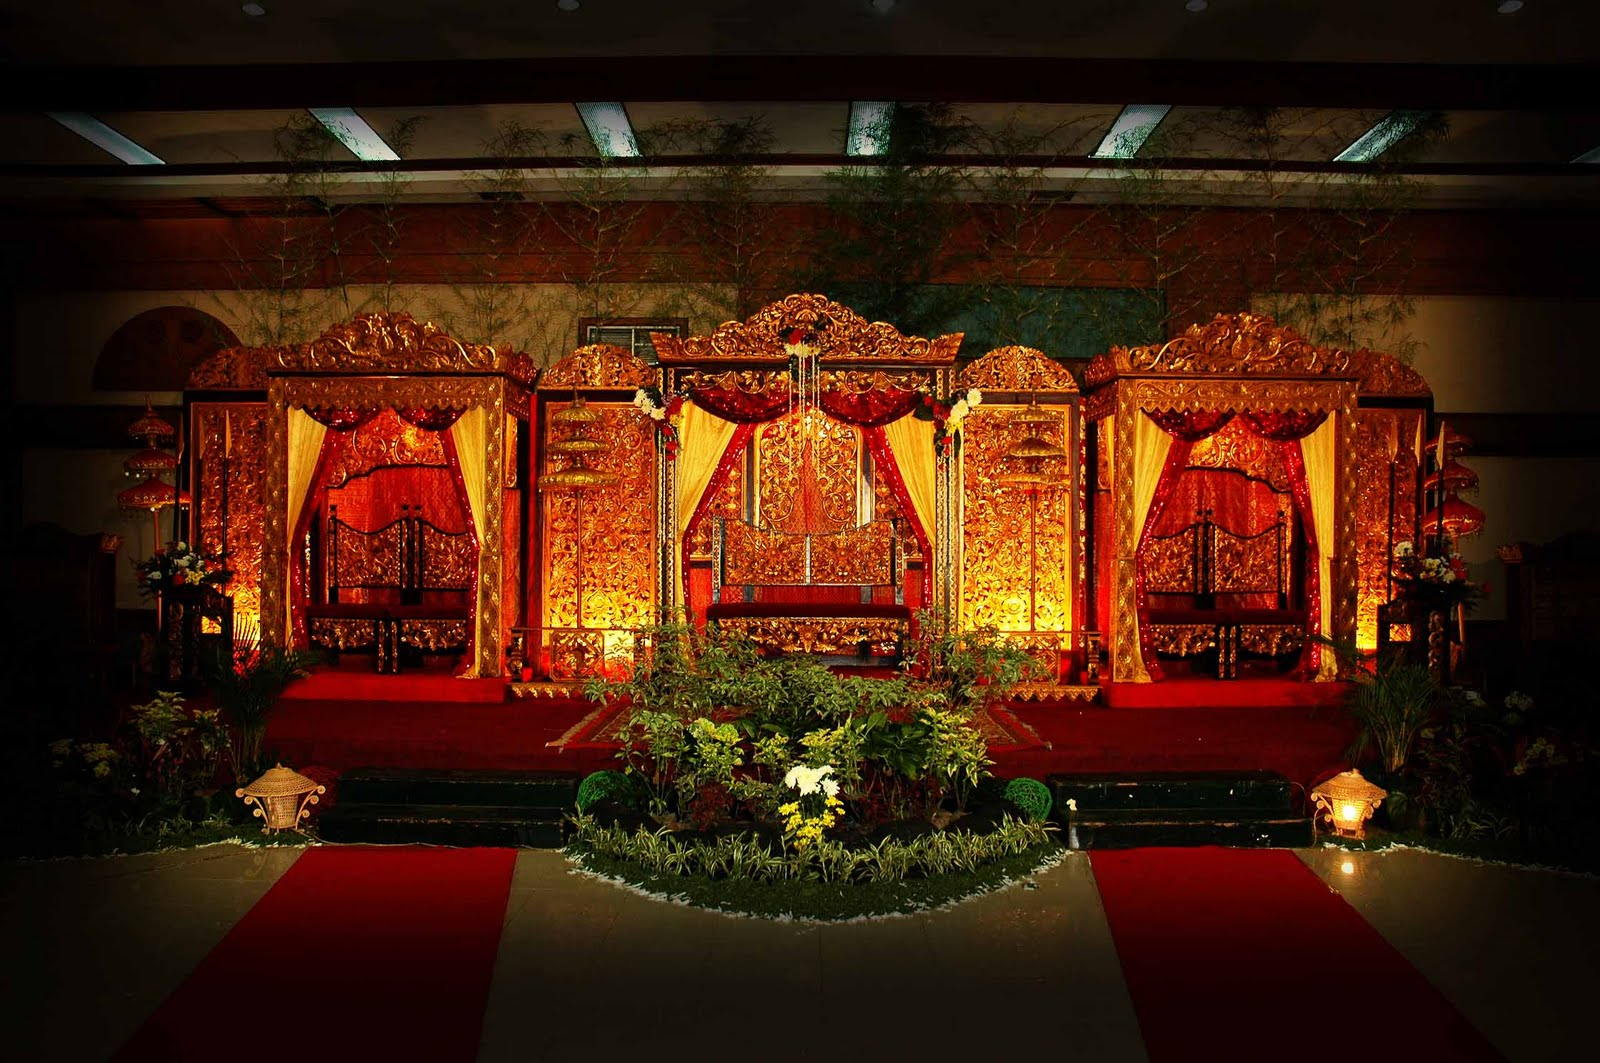 Wallpaper backgrounds indian wedding stage decoration for Back ground decoration